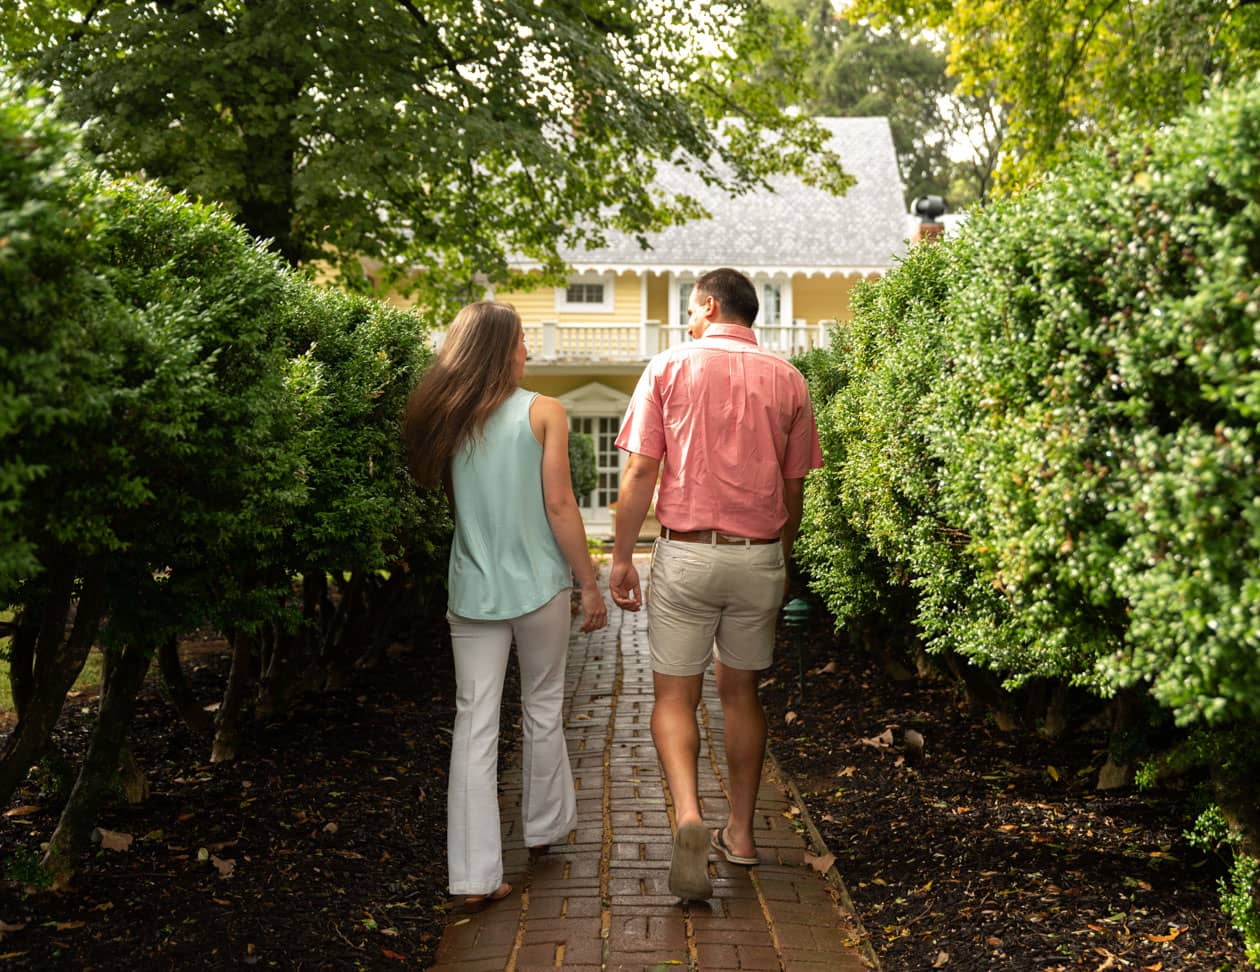 A couple walking down a brick pathway flanked by hedges